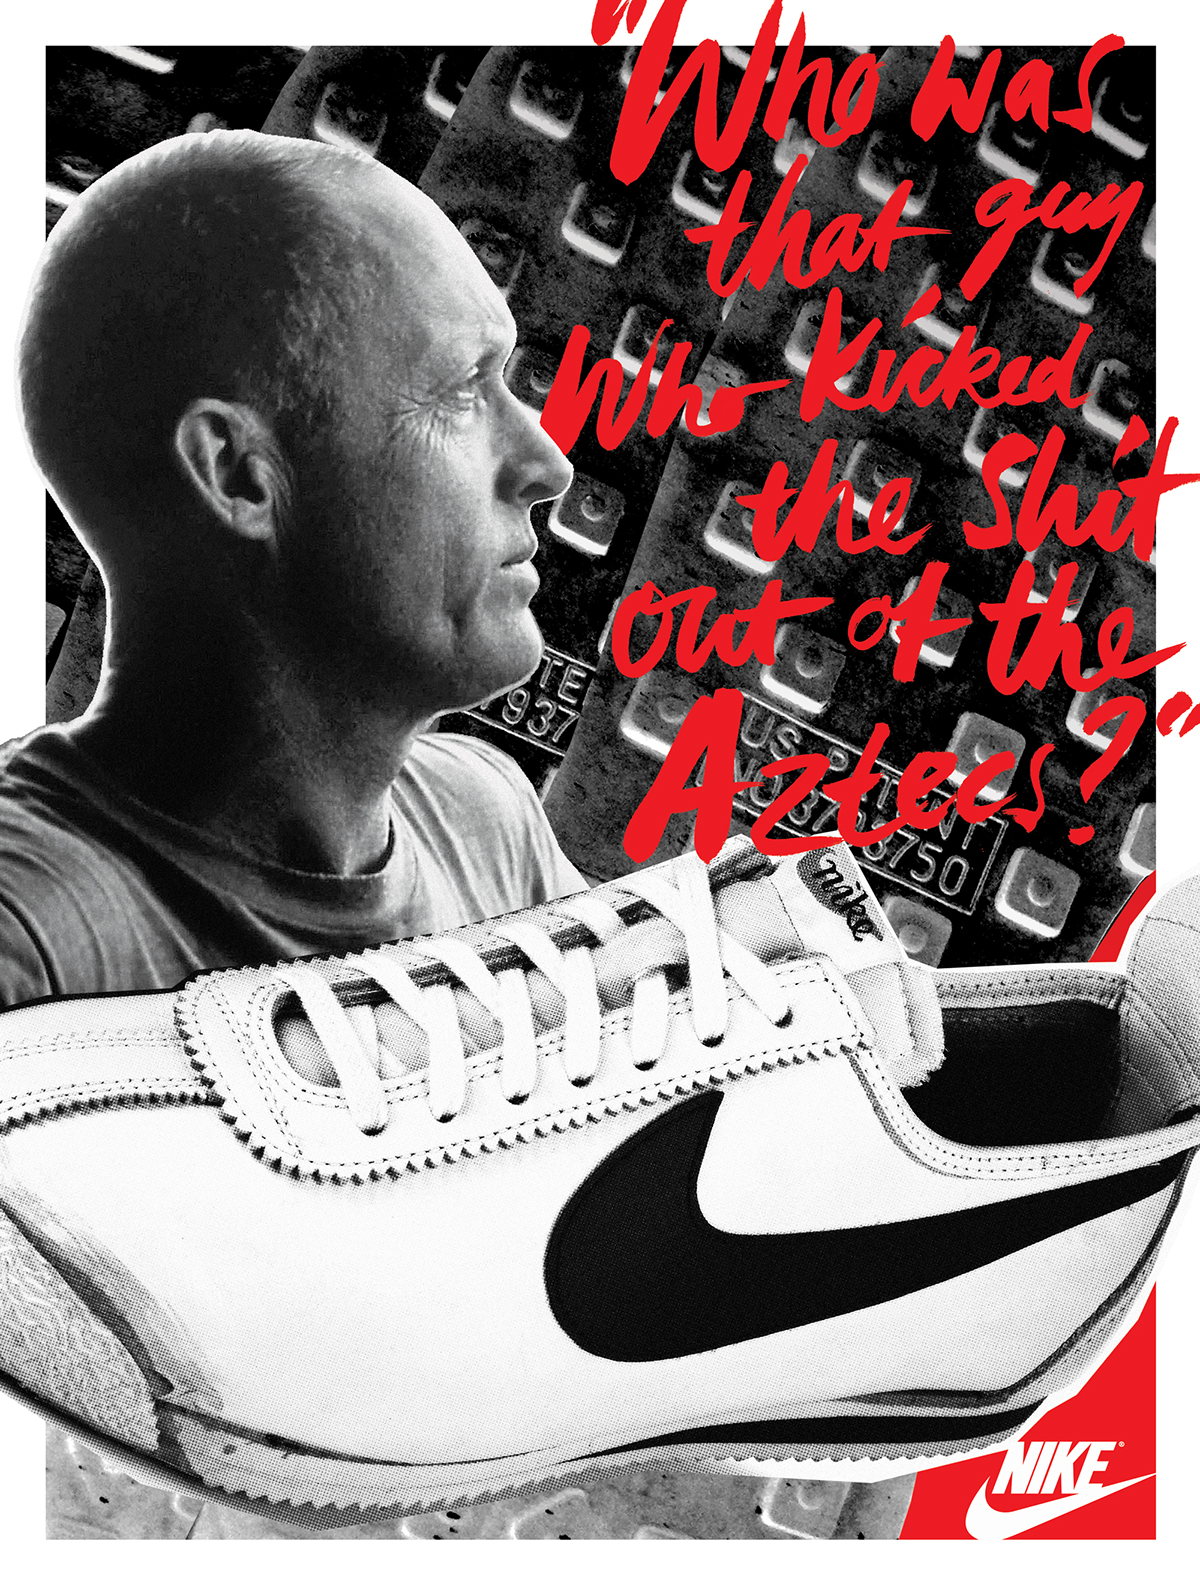 Shoe Dog By Phil Knight Nike Posters On Behance